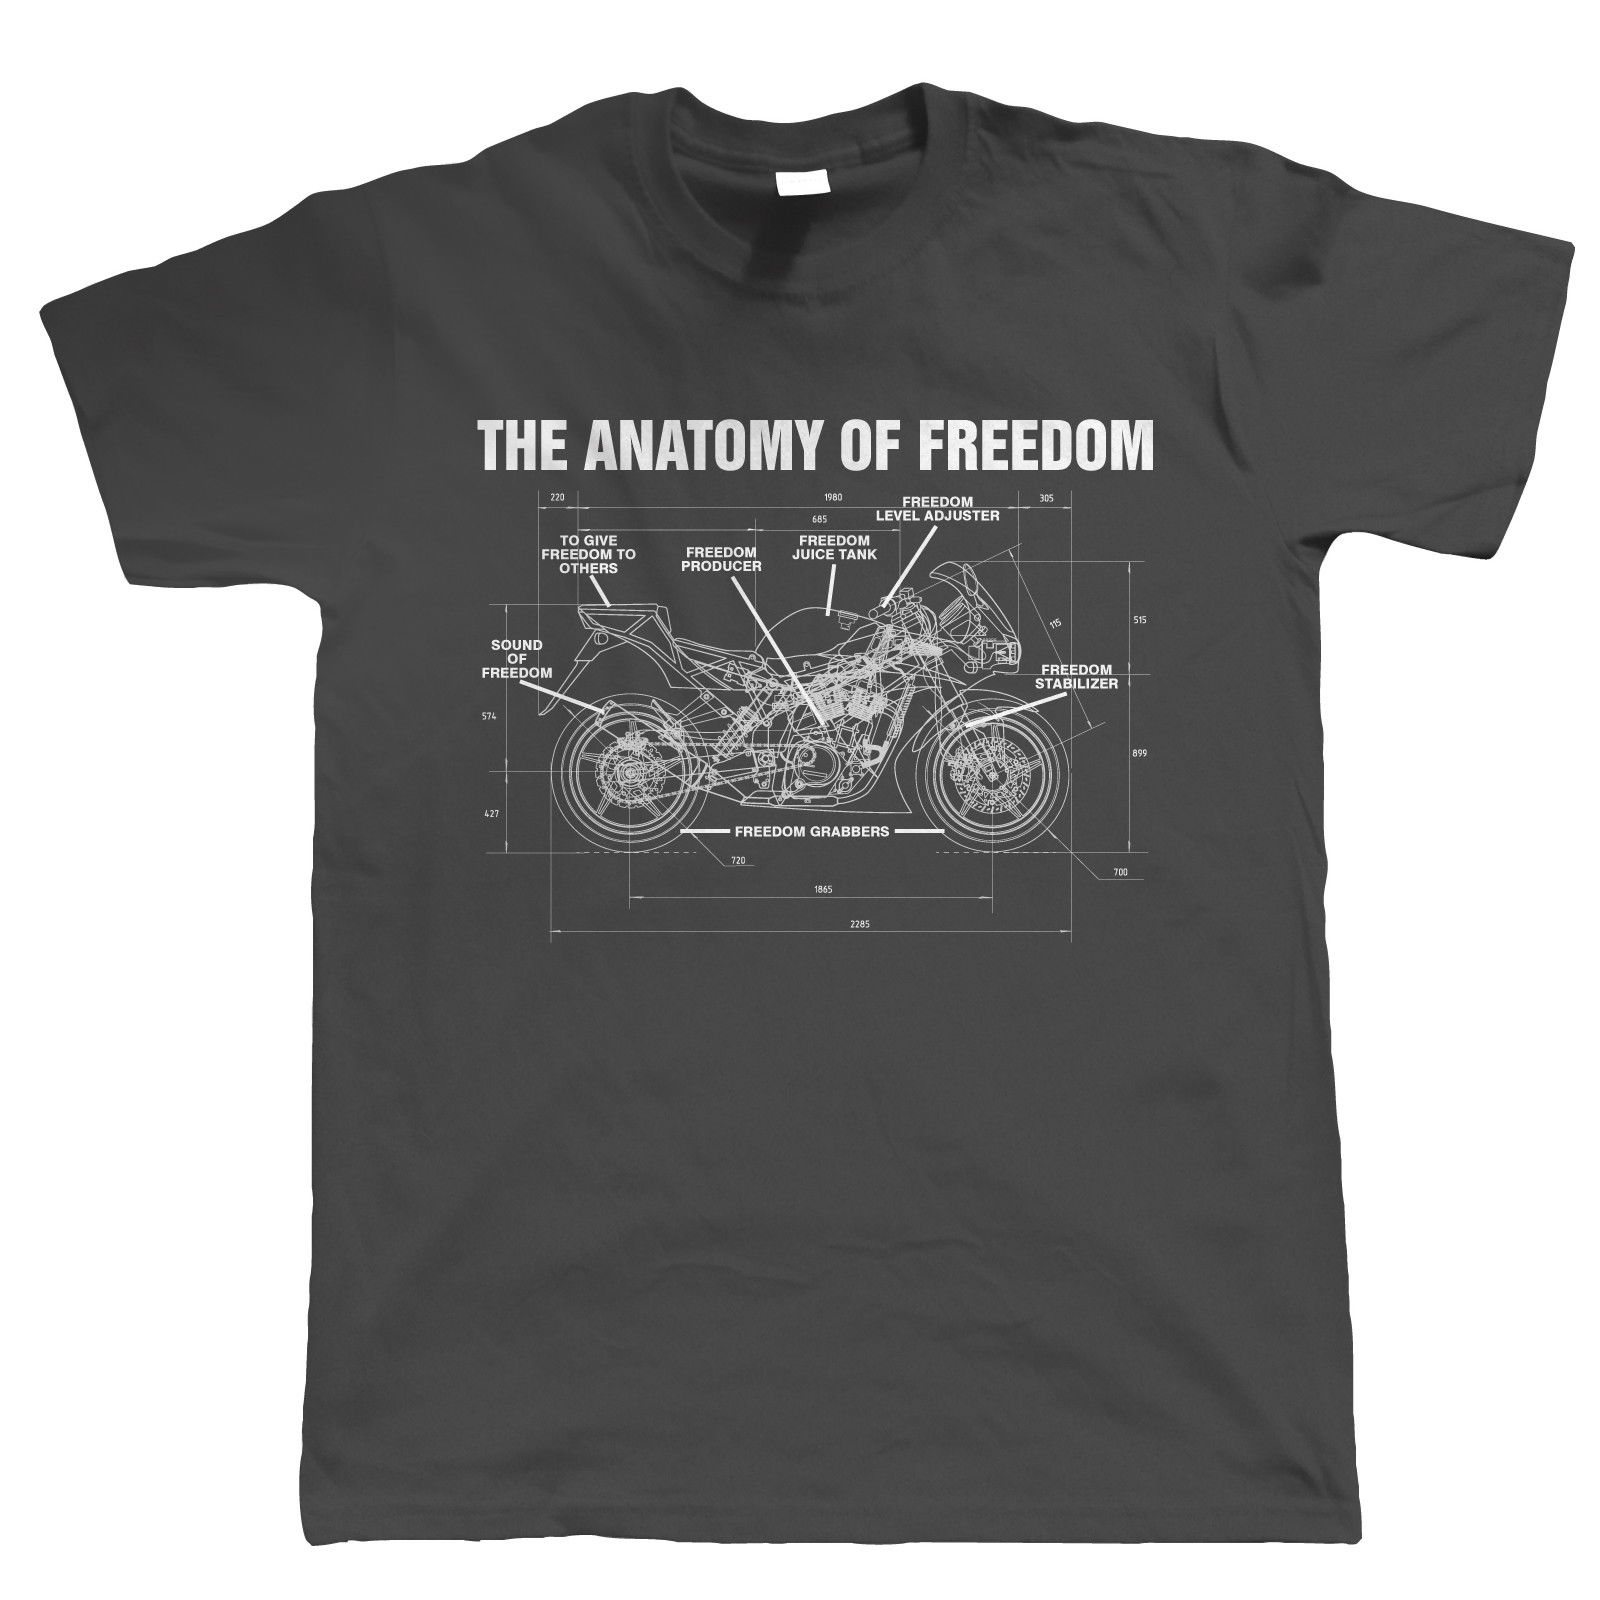 Hot New 2019 Summer Fashion Anatomy Of Freedom Mens Biker T Shirt - Superbike Motorcycle TT Gift For Him Dad Tee Shirt